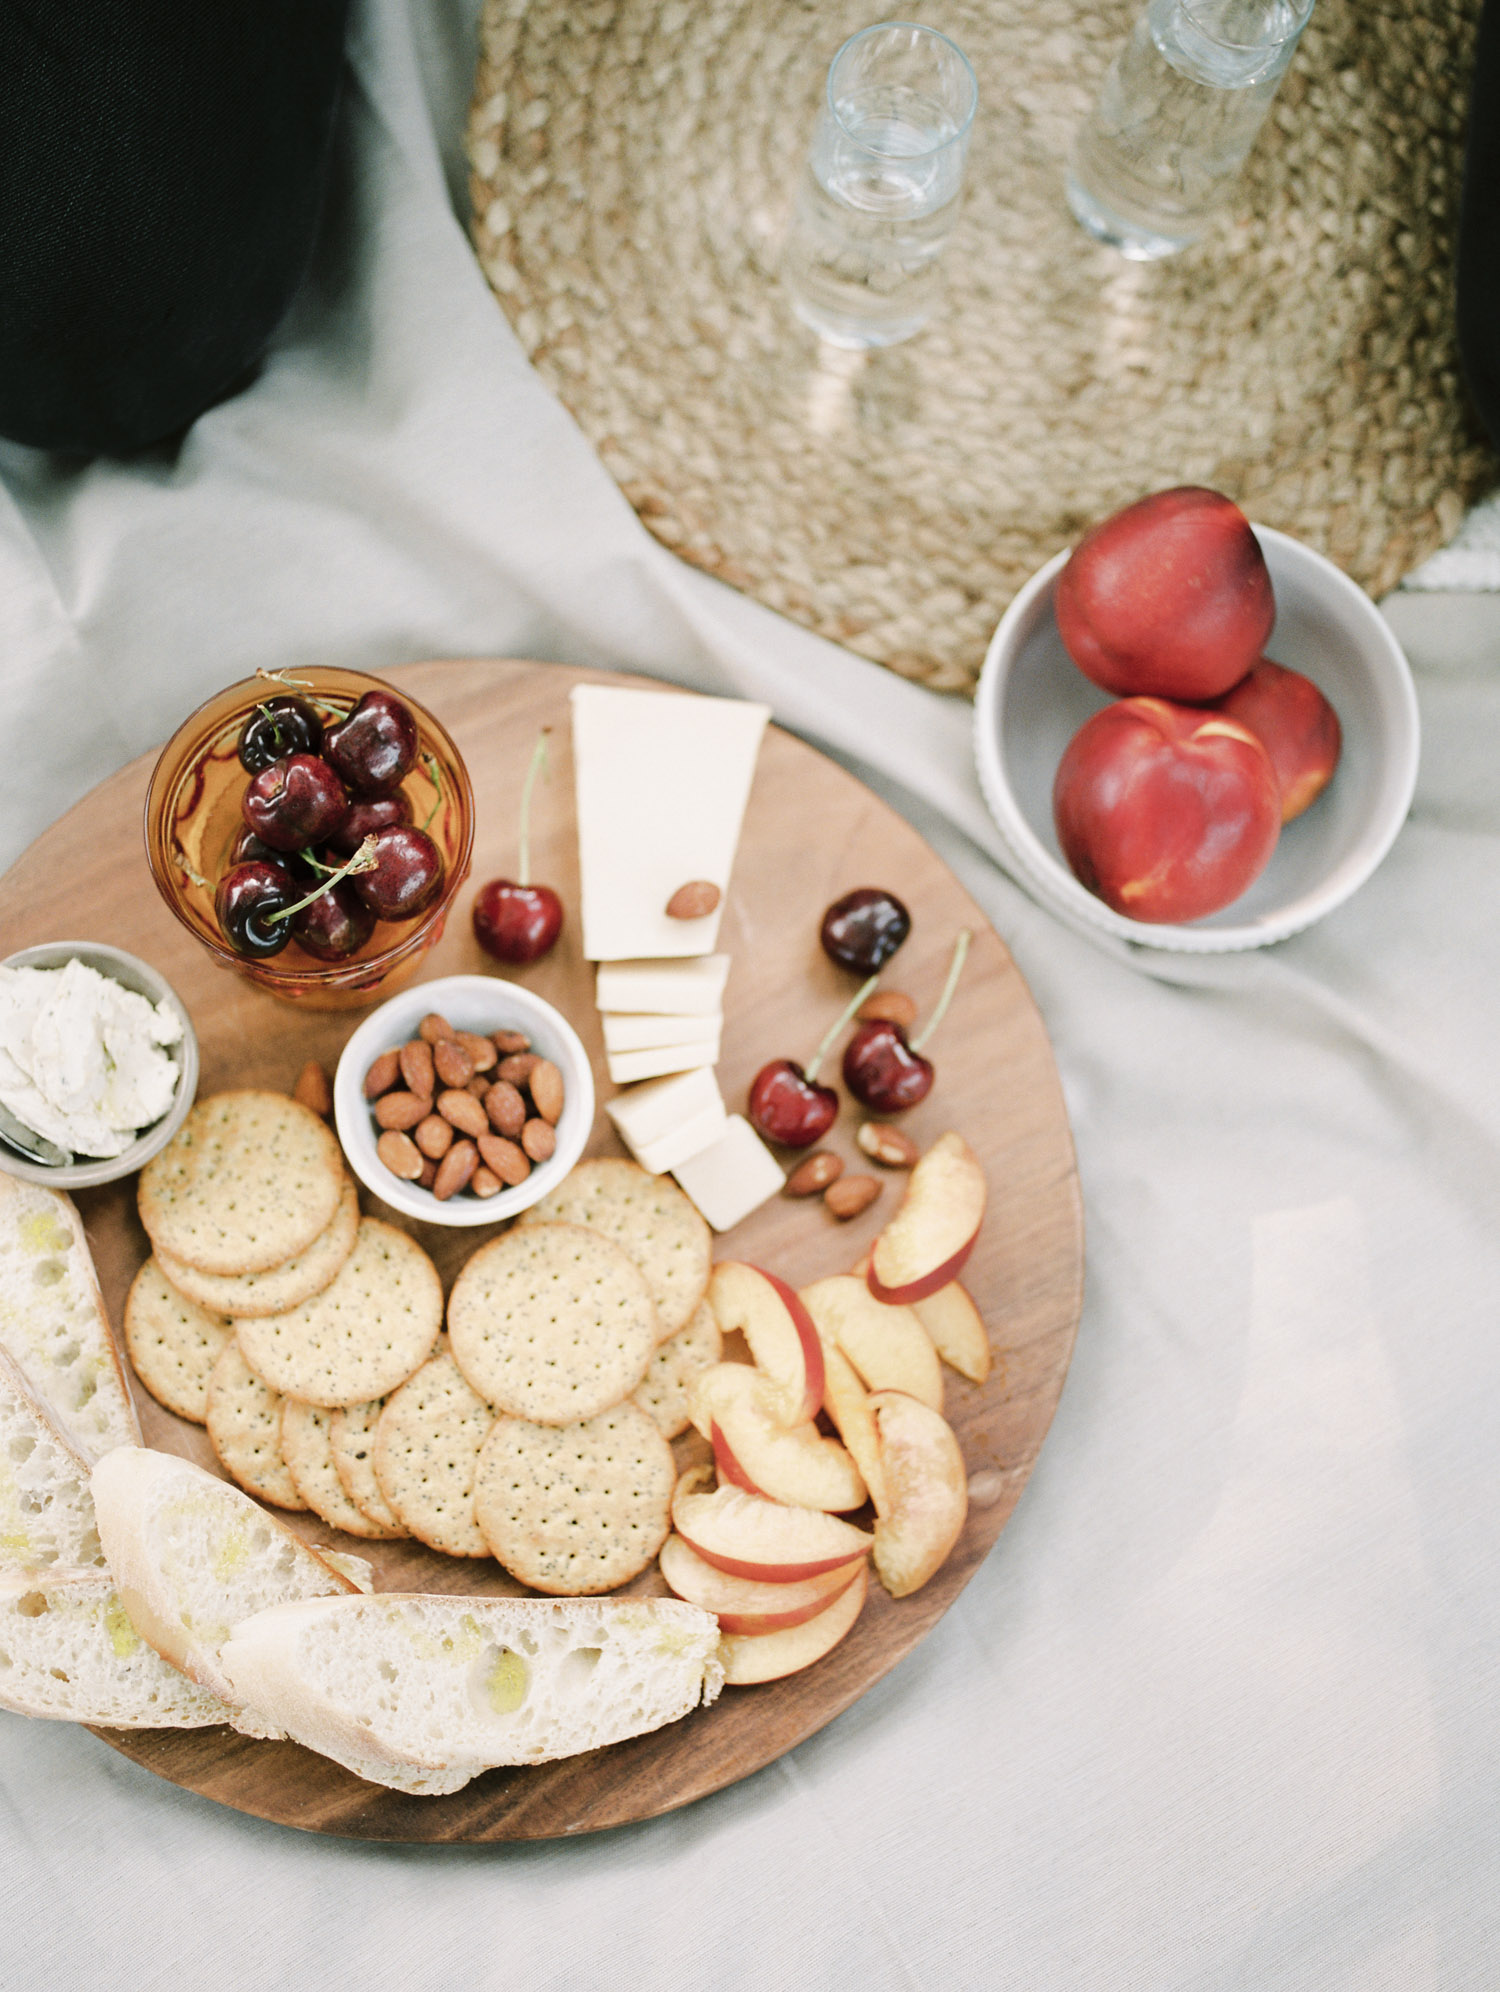 A vegan charcuterie spread on a wood board with vegan cheese, crackers, and seasonal fruit in Detroit, Michigan